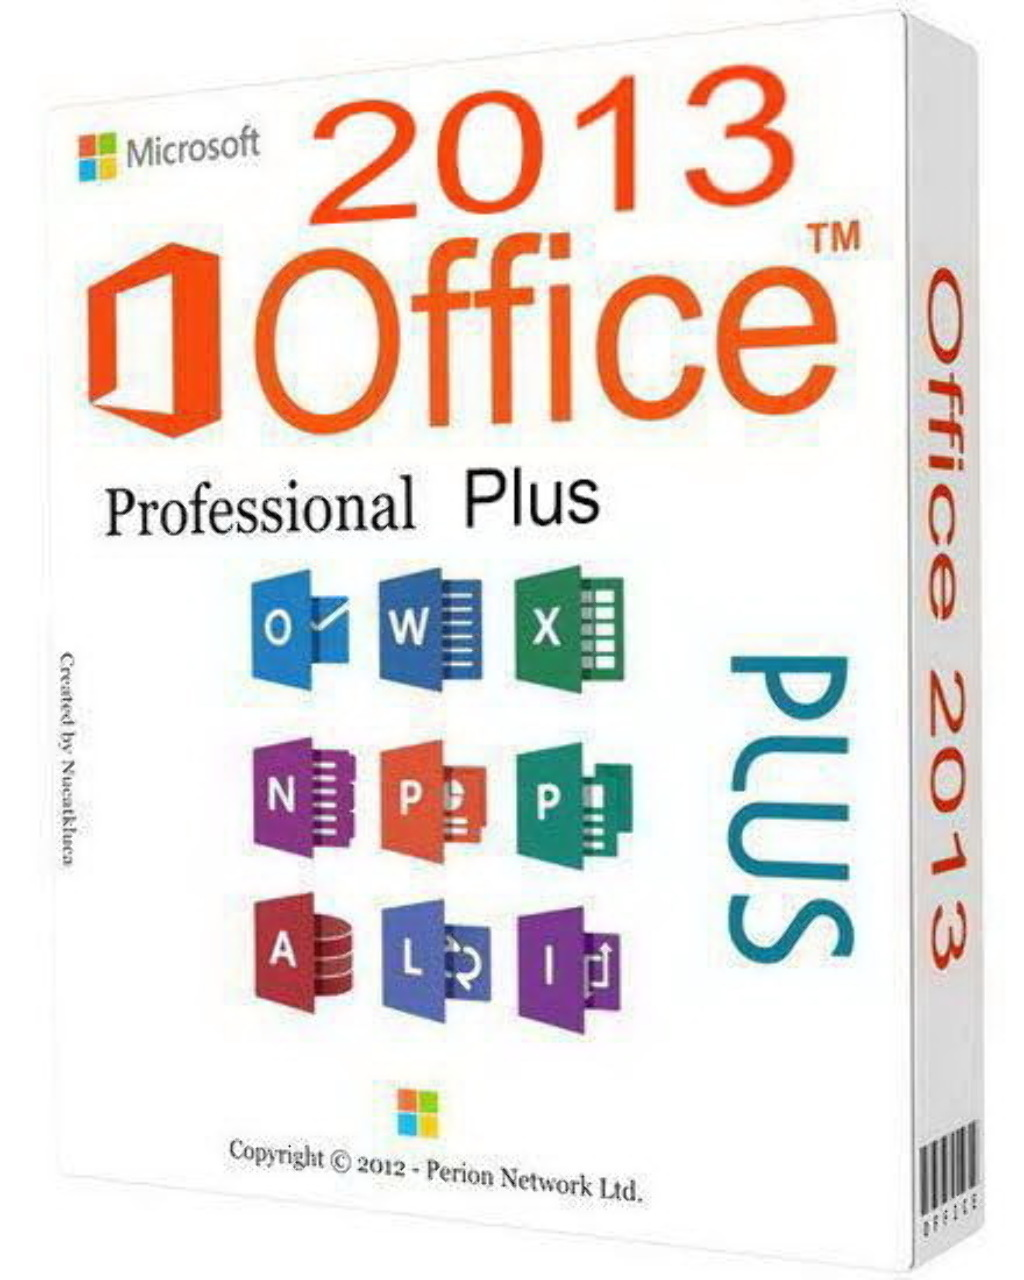 microsoft office 2013 free download with product key 32 bit